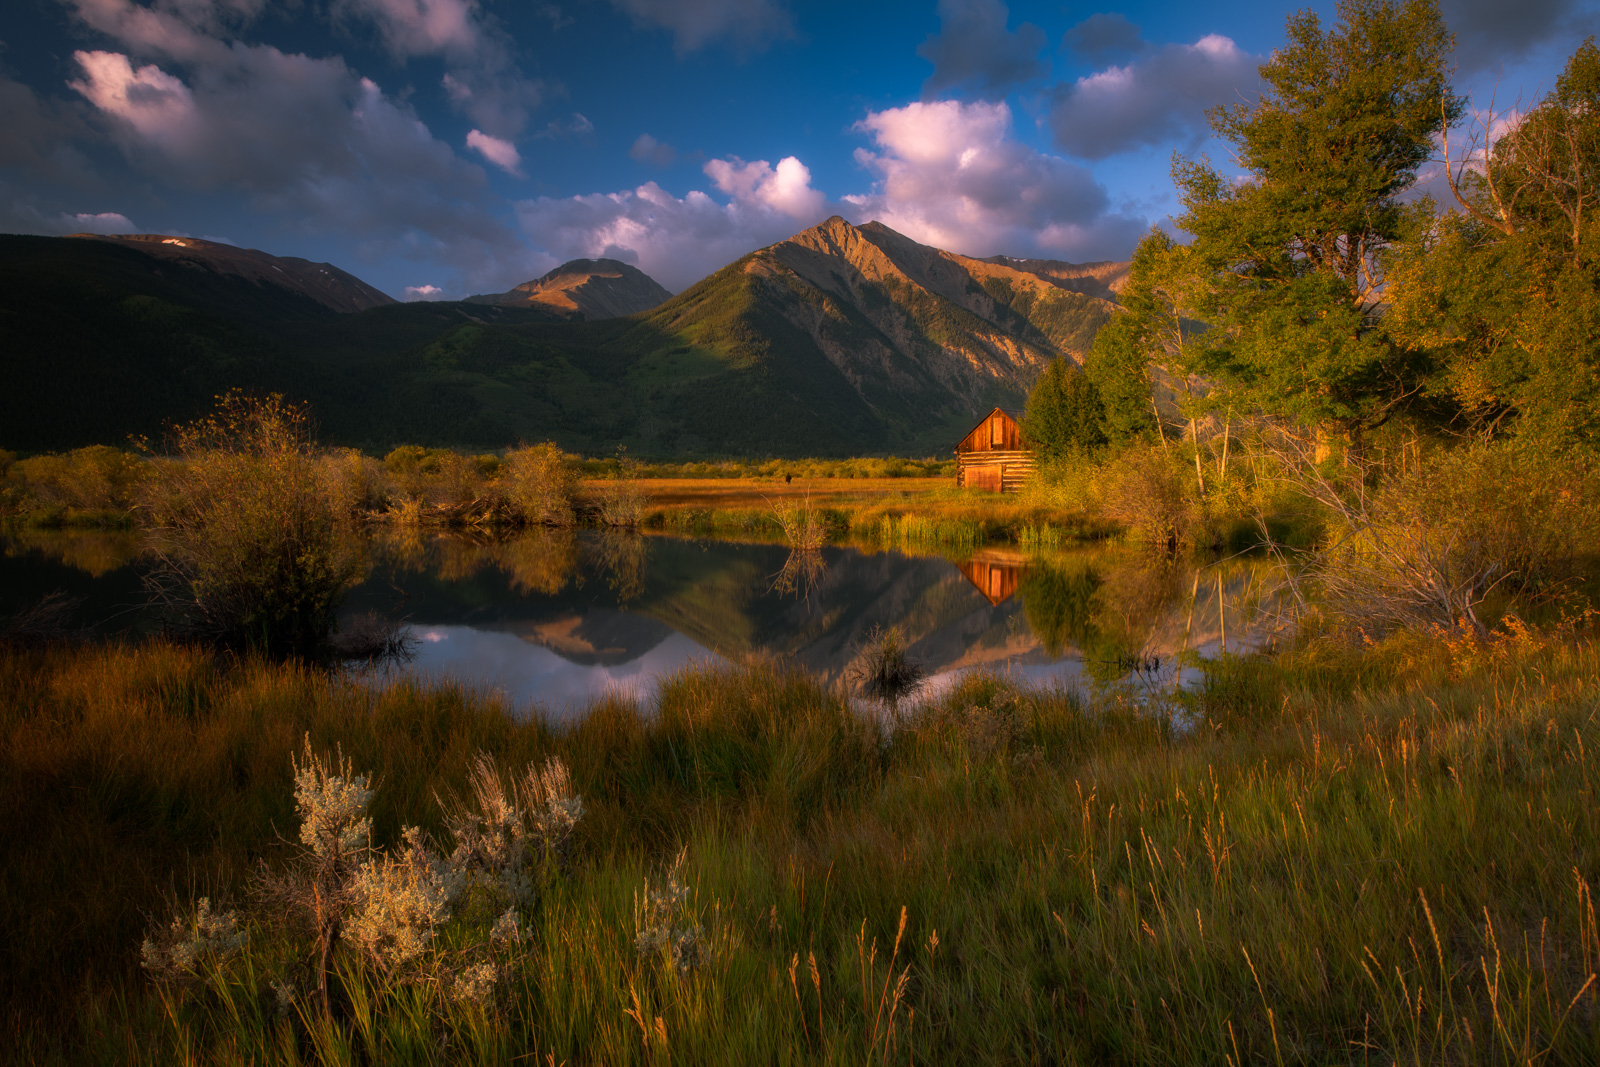 A small cabin and the peaks of the Sawatch Range reflected in Twin Lakes, Colorado.Add beauty to your space with a Joseph Rossbach...